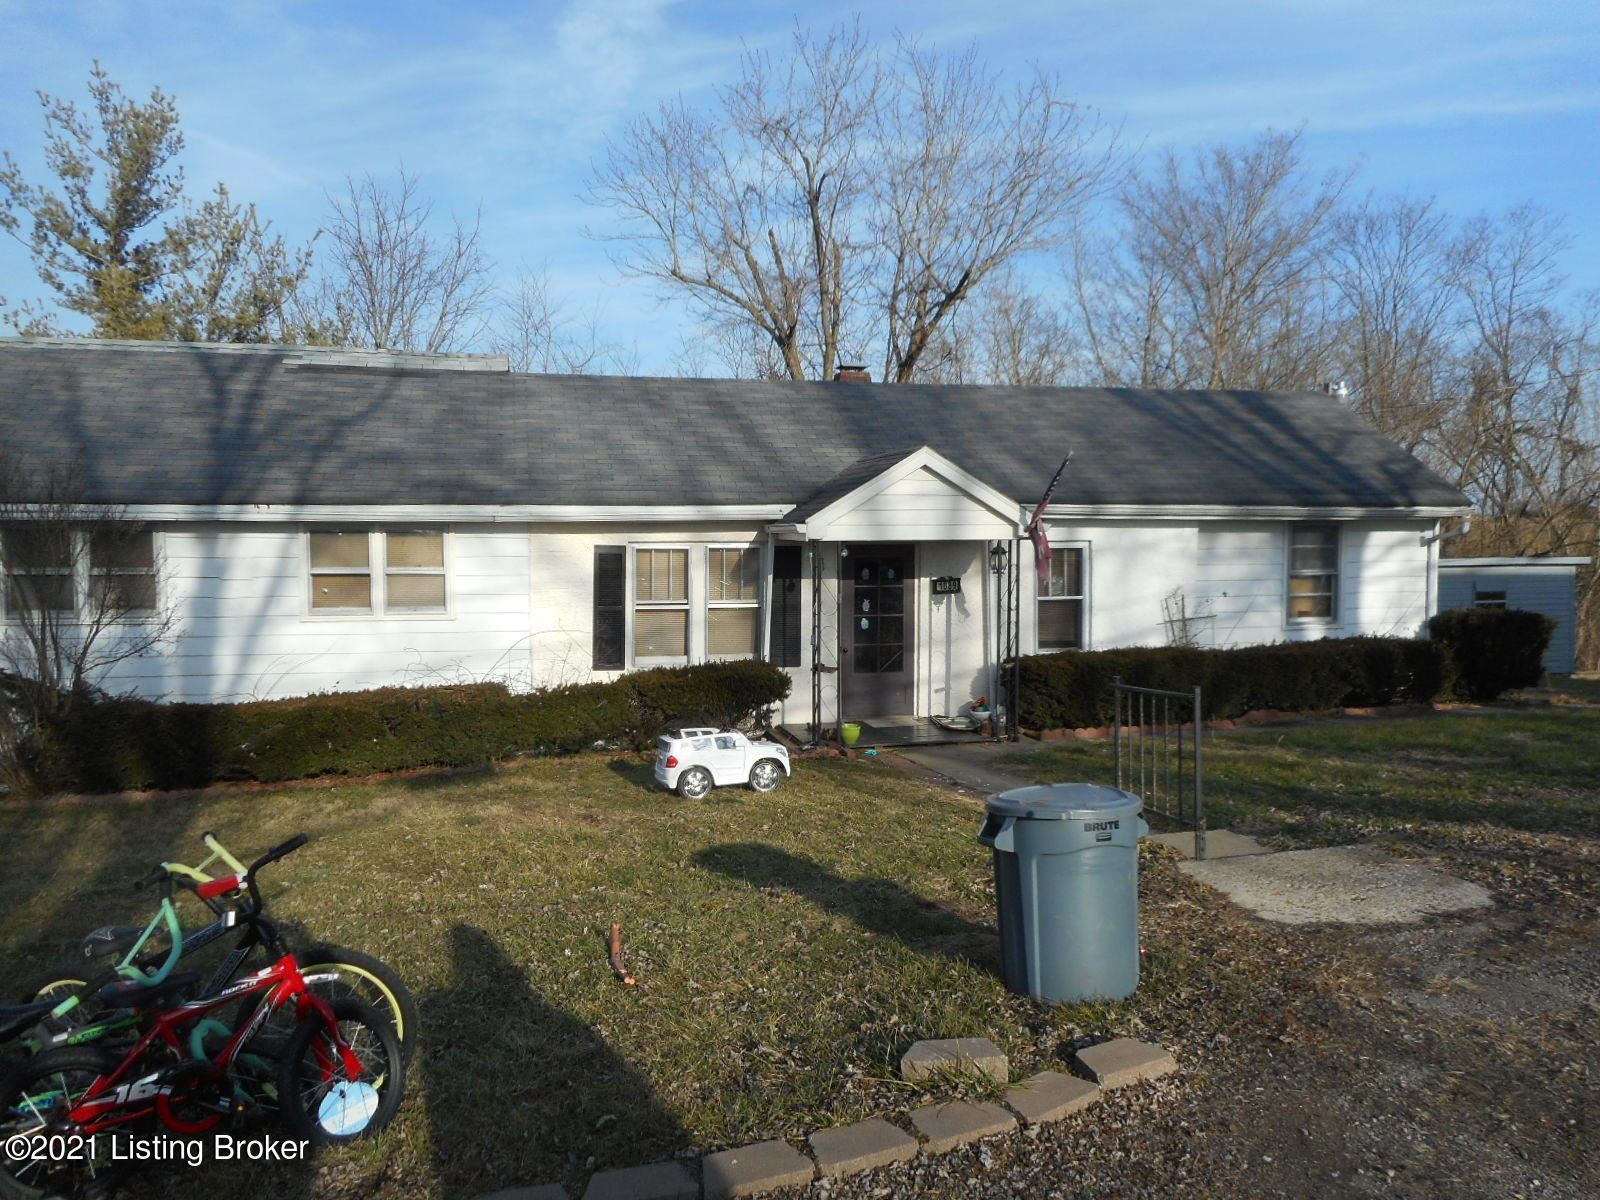 Photo of 1089 Bloomfield Rd, Taylorsville, KY 40071 (MLS # 1577429)